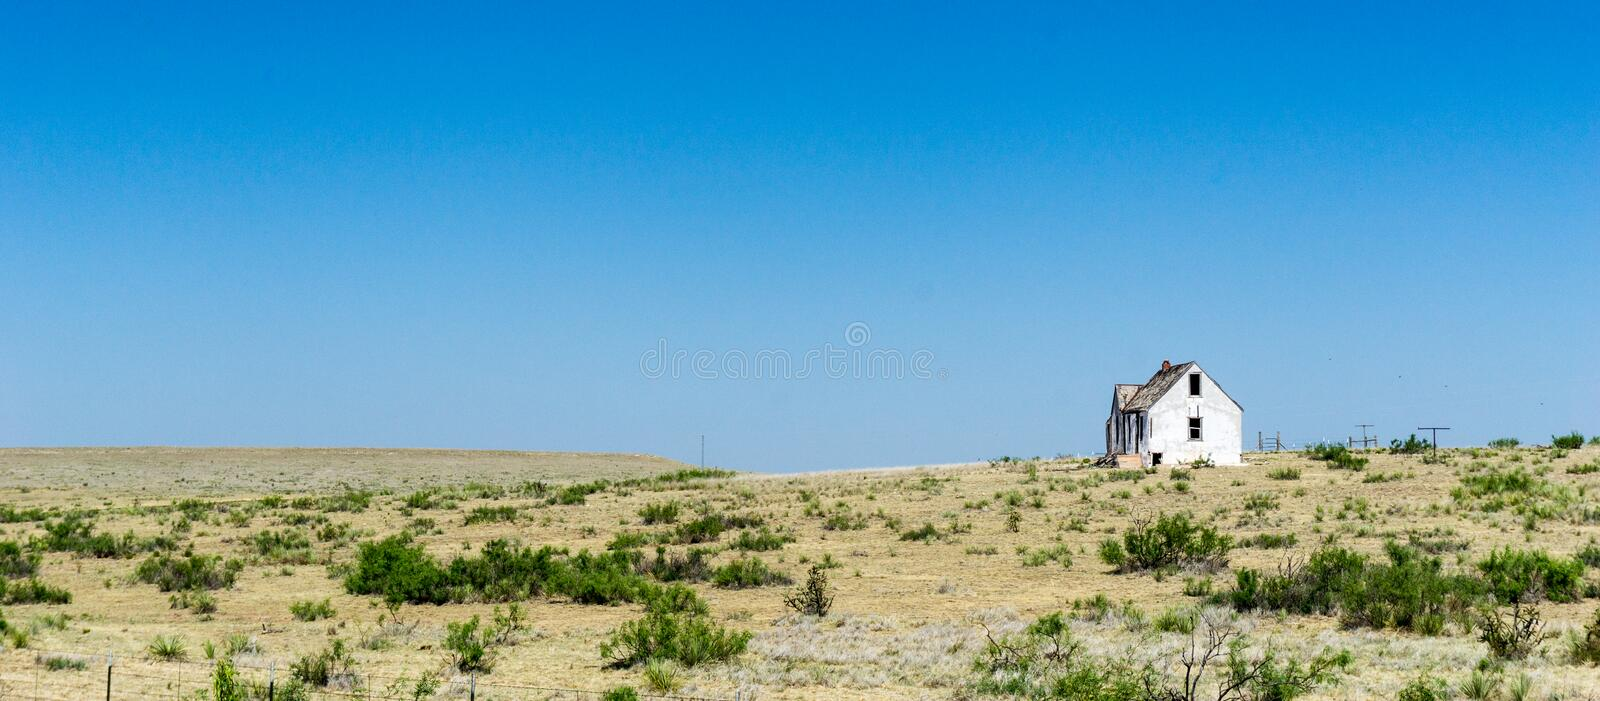 Old dilapidated and abandoned white wooden house on the remote prairie in the middlew of nowhere under a blue sky royalty free stock images